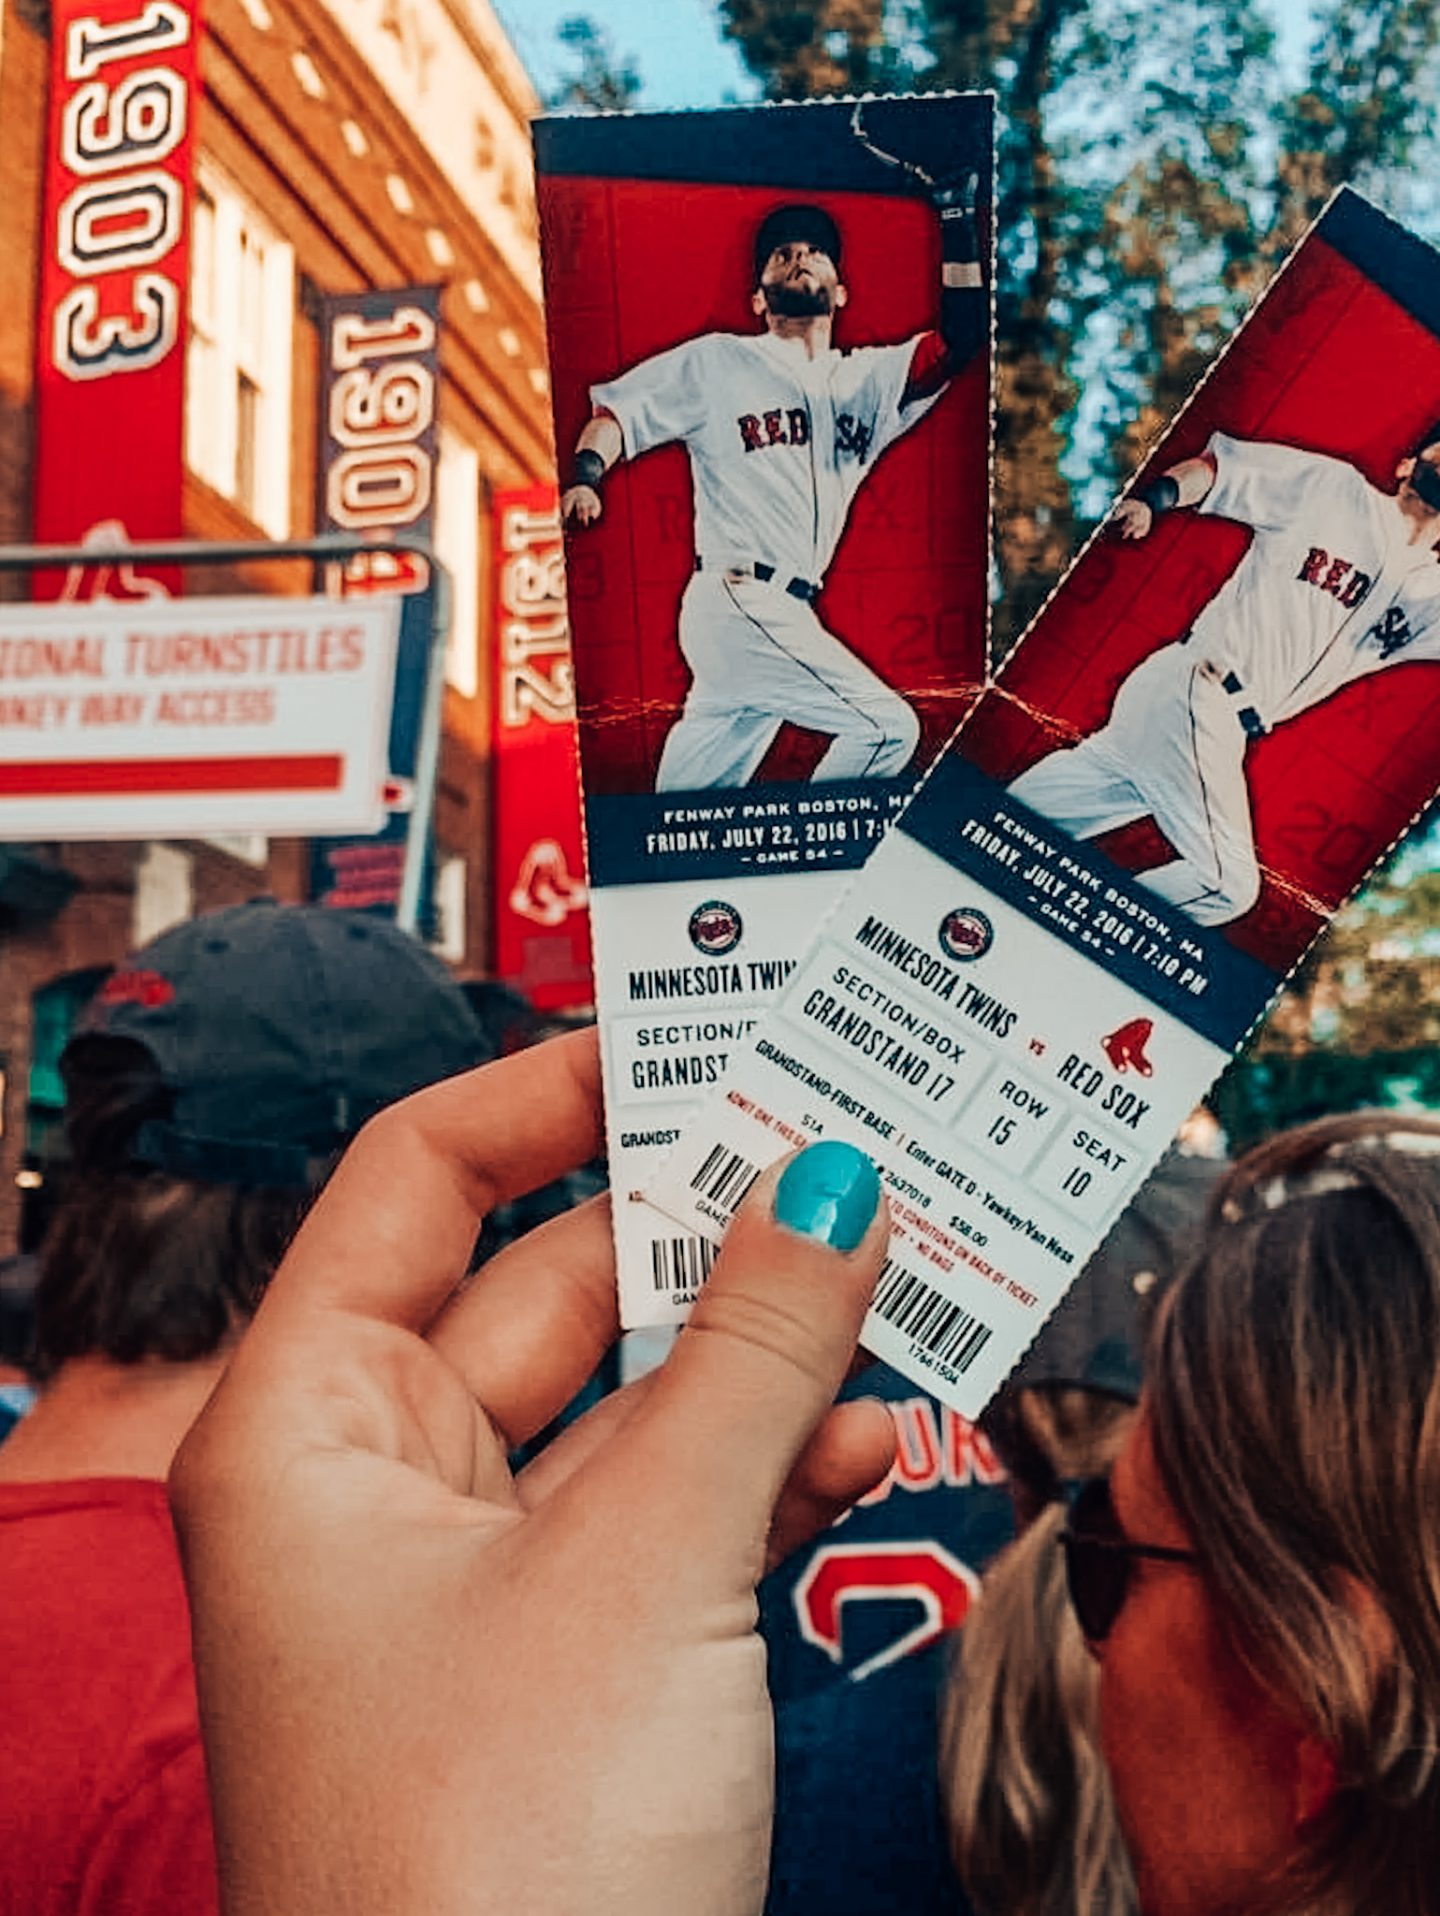 Girl holds up two baseball tickets in front of Fenway Park in Boston, MA